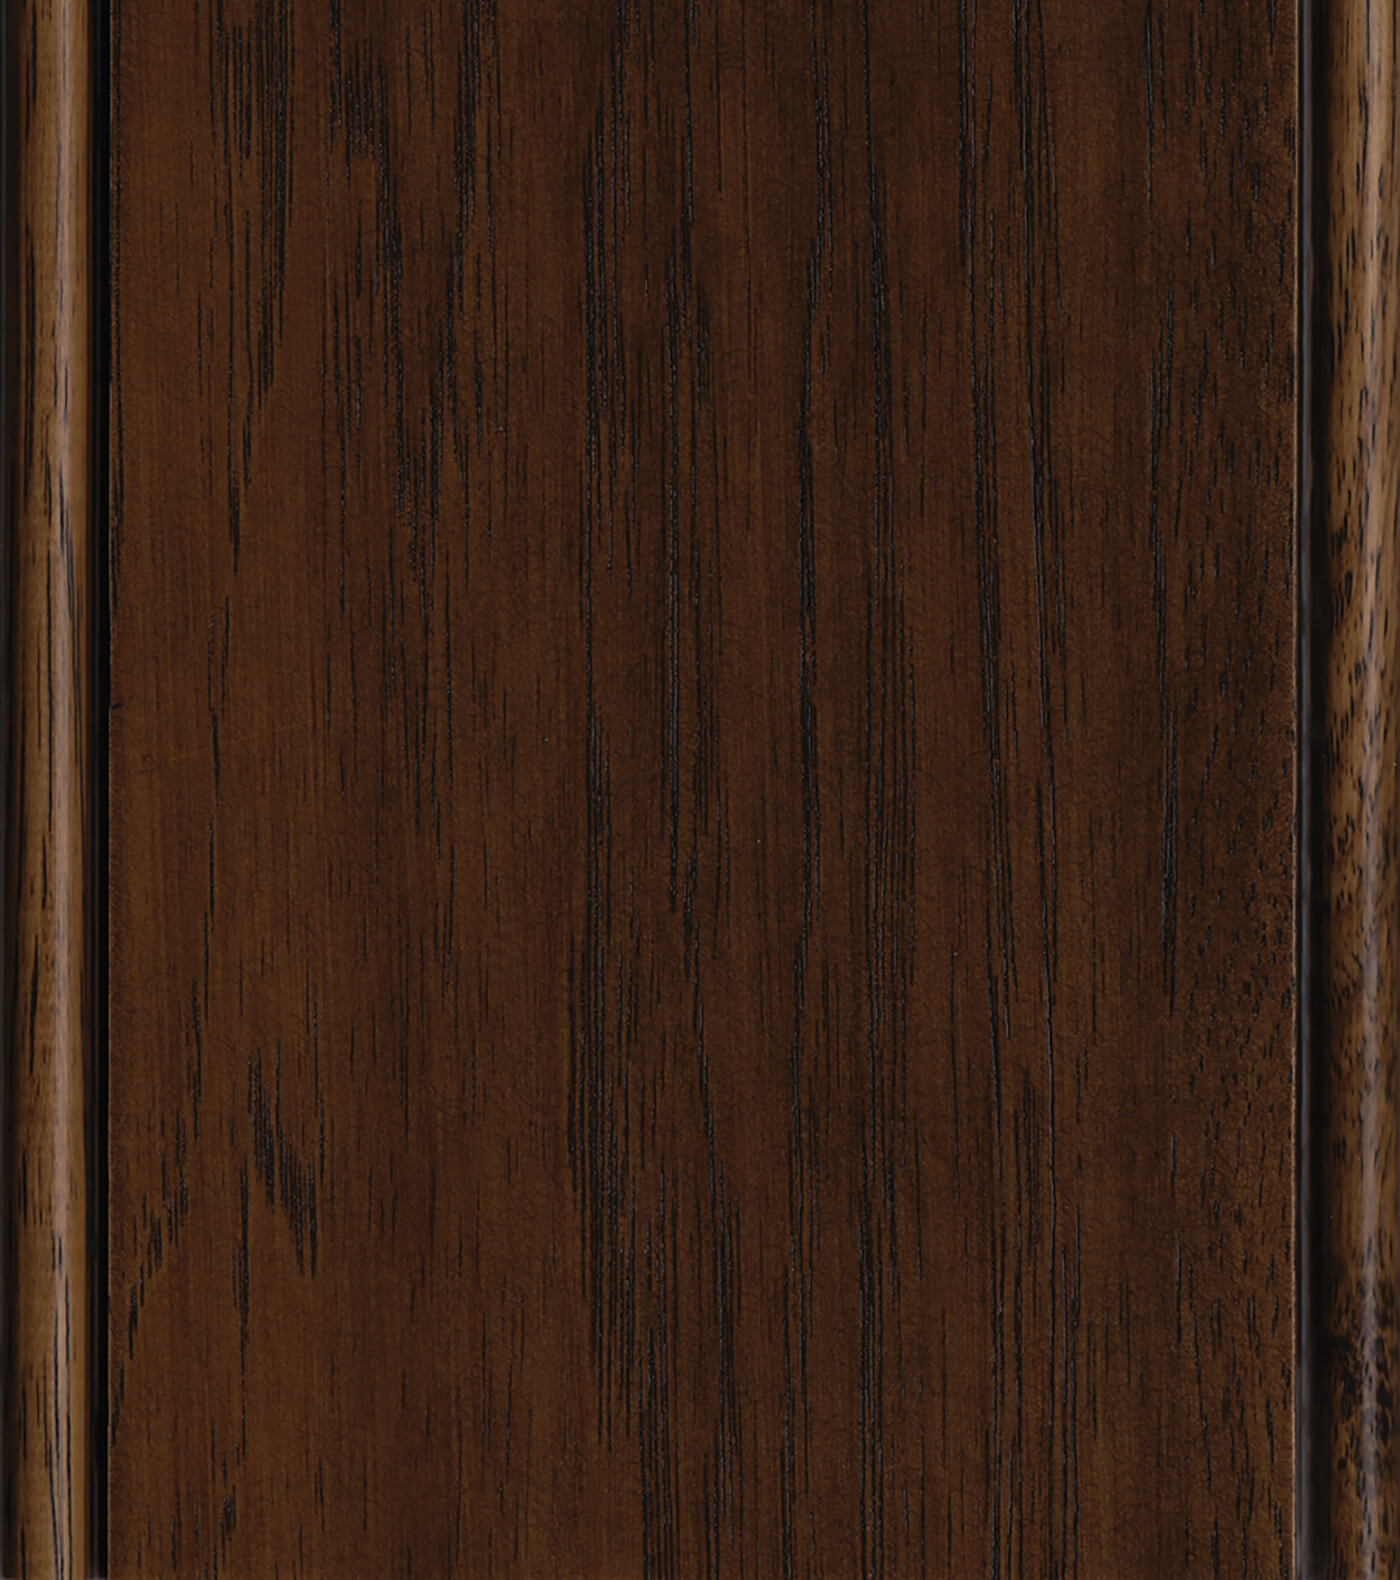 Mocha Stain on Hickory or Rustic Hickory